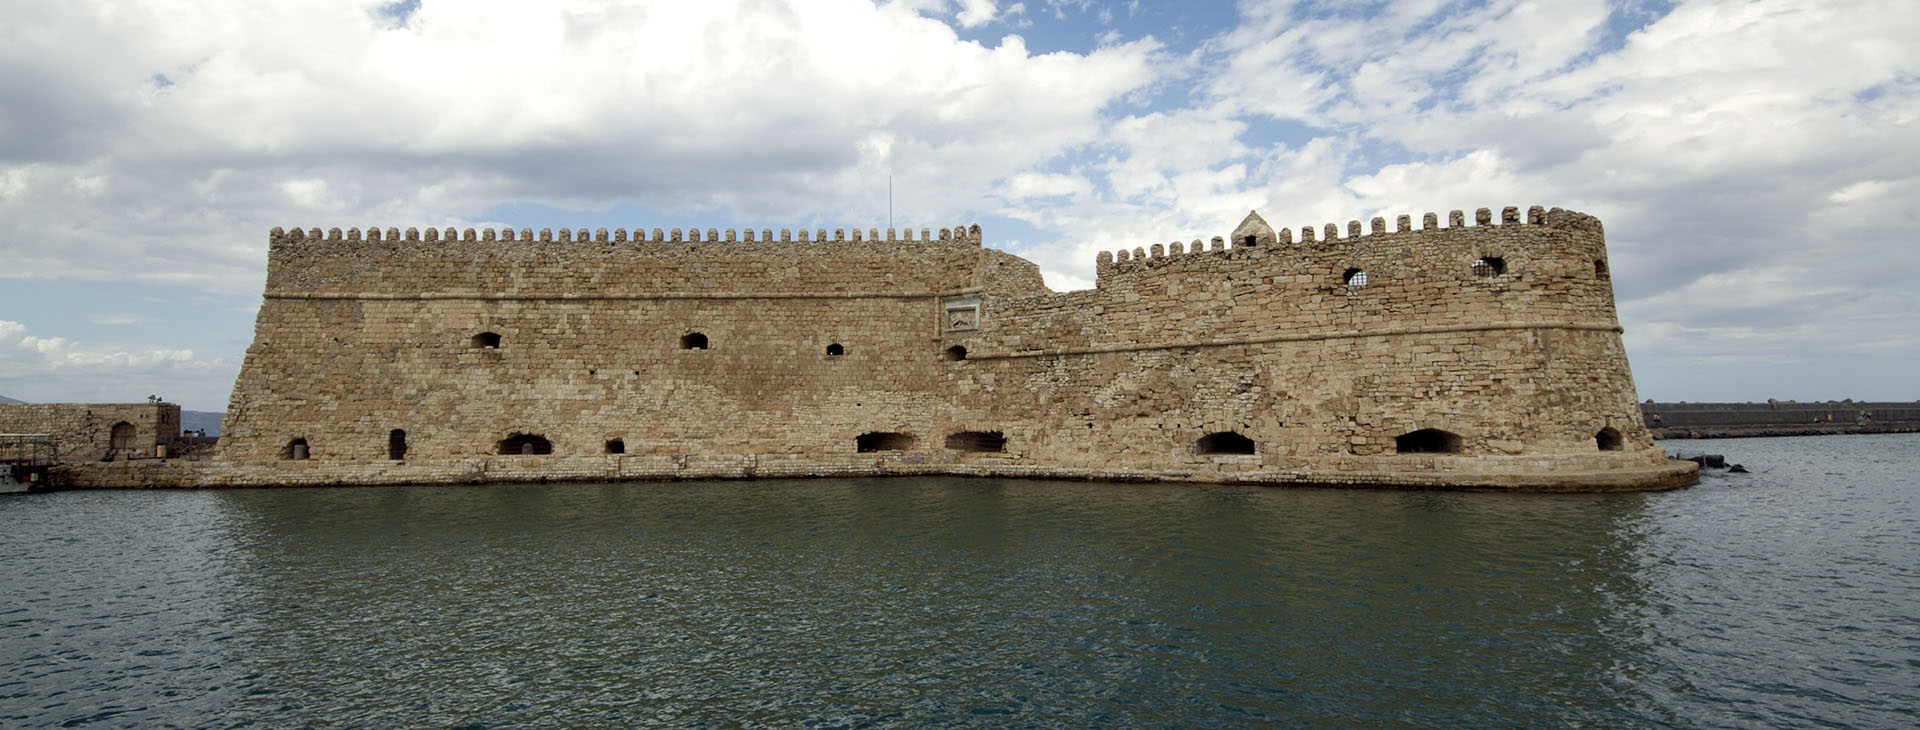 Koule castle in the old harbour, Heraklion city